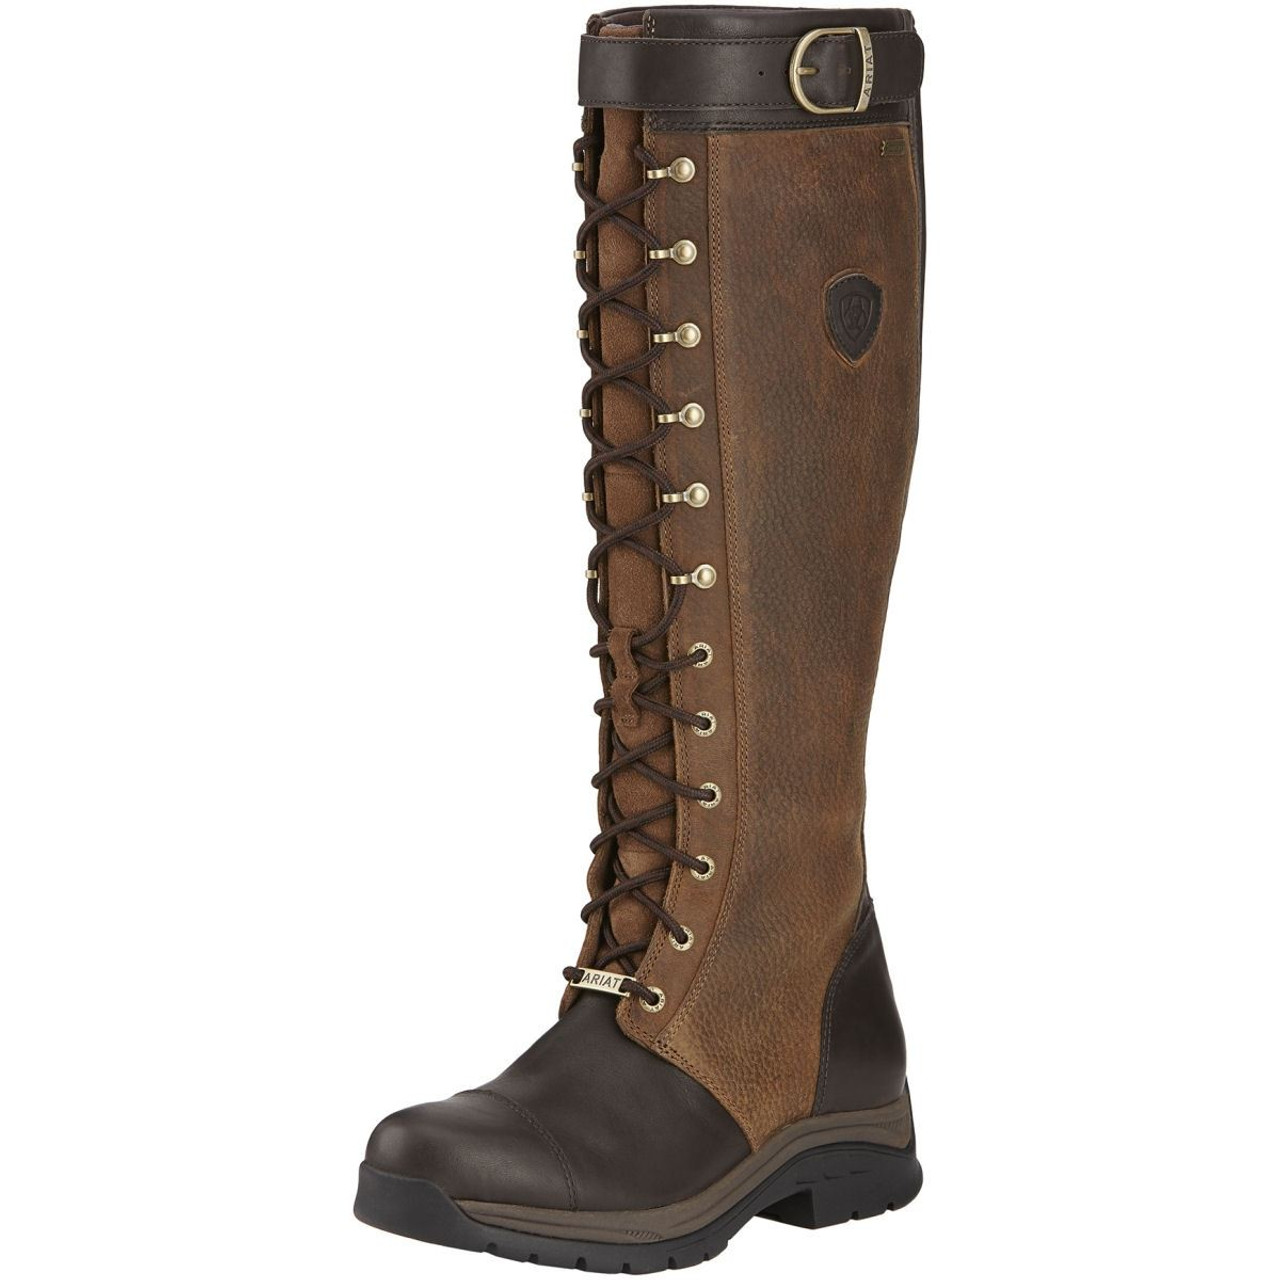 Ebony Brown - Ariat Berwick Insulated GTX Boots